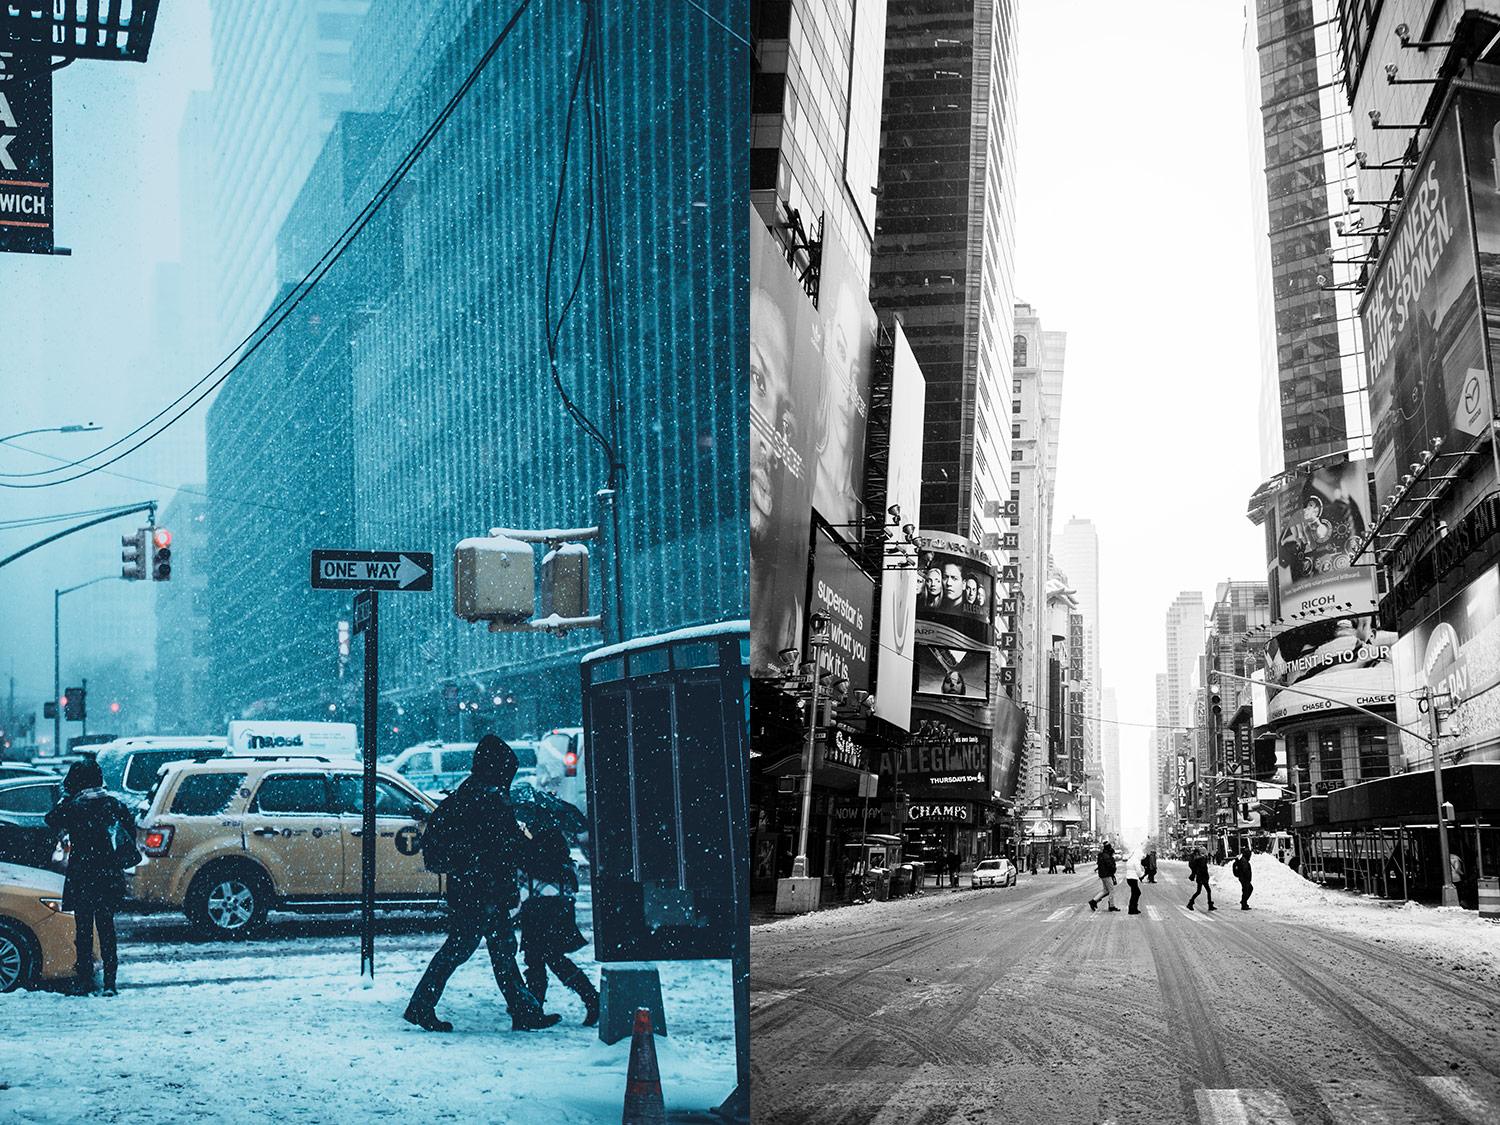 photographic-inspiration-or-copying